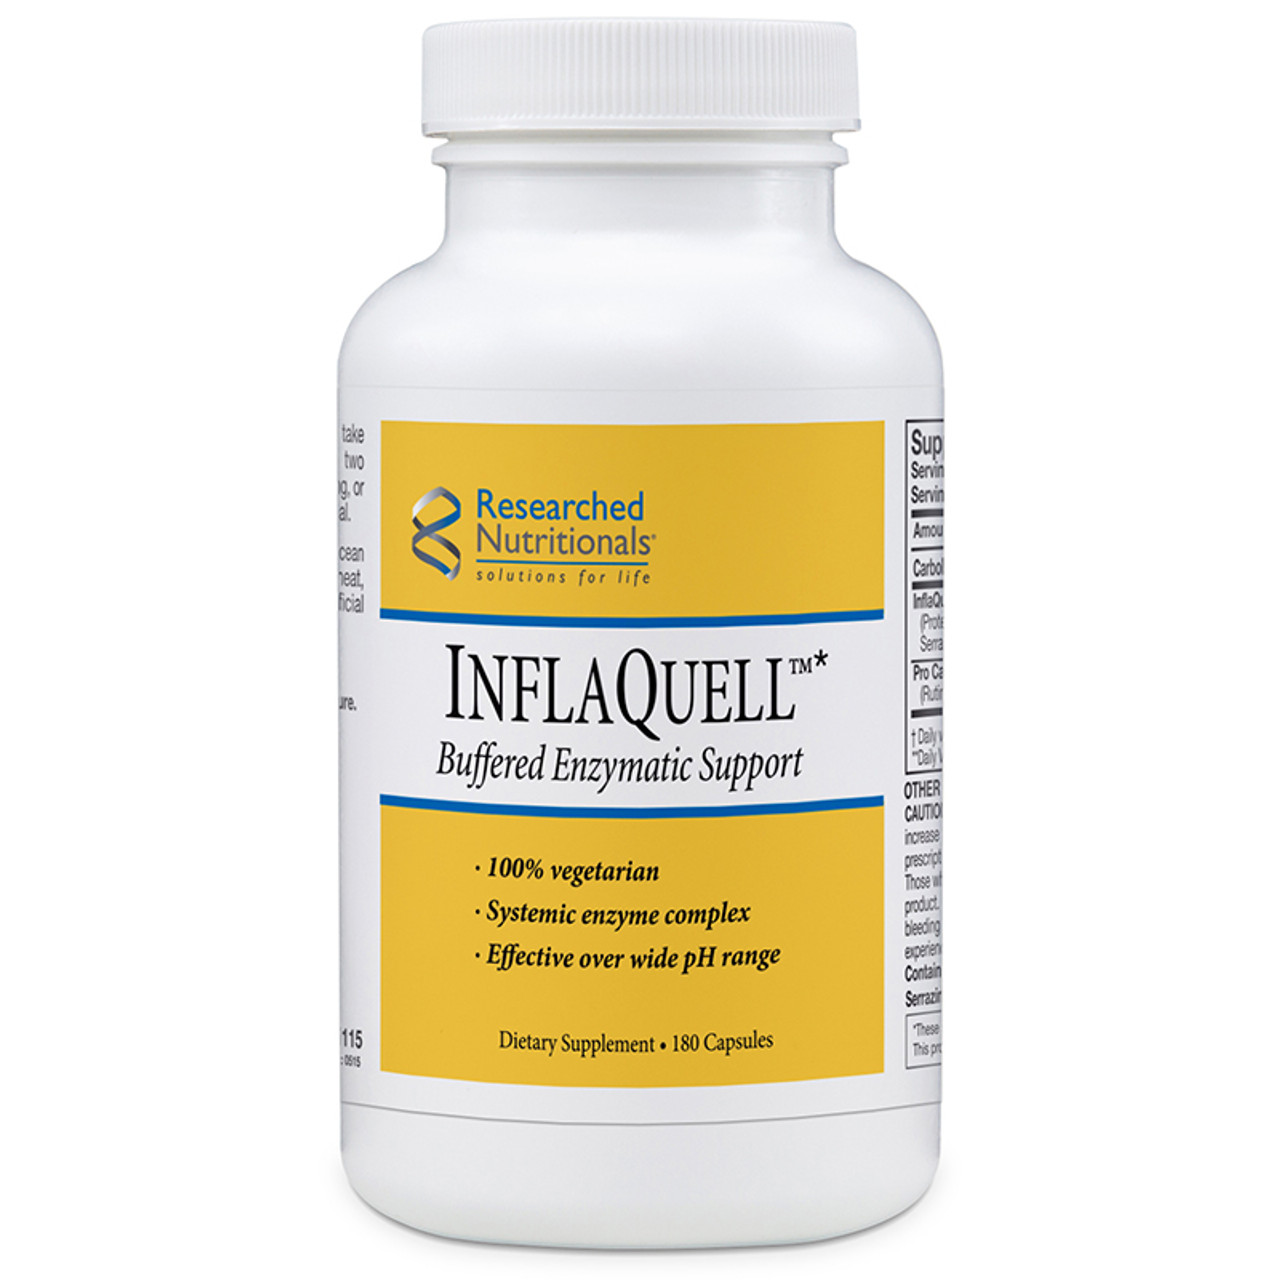 Researched Nutritionals InflaQuell 180 caps